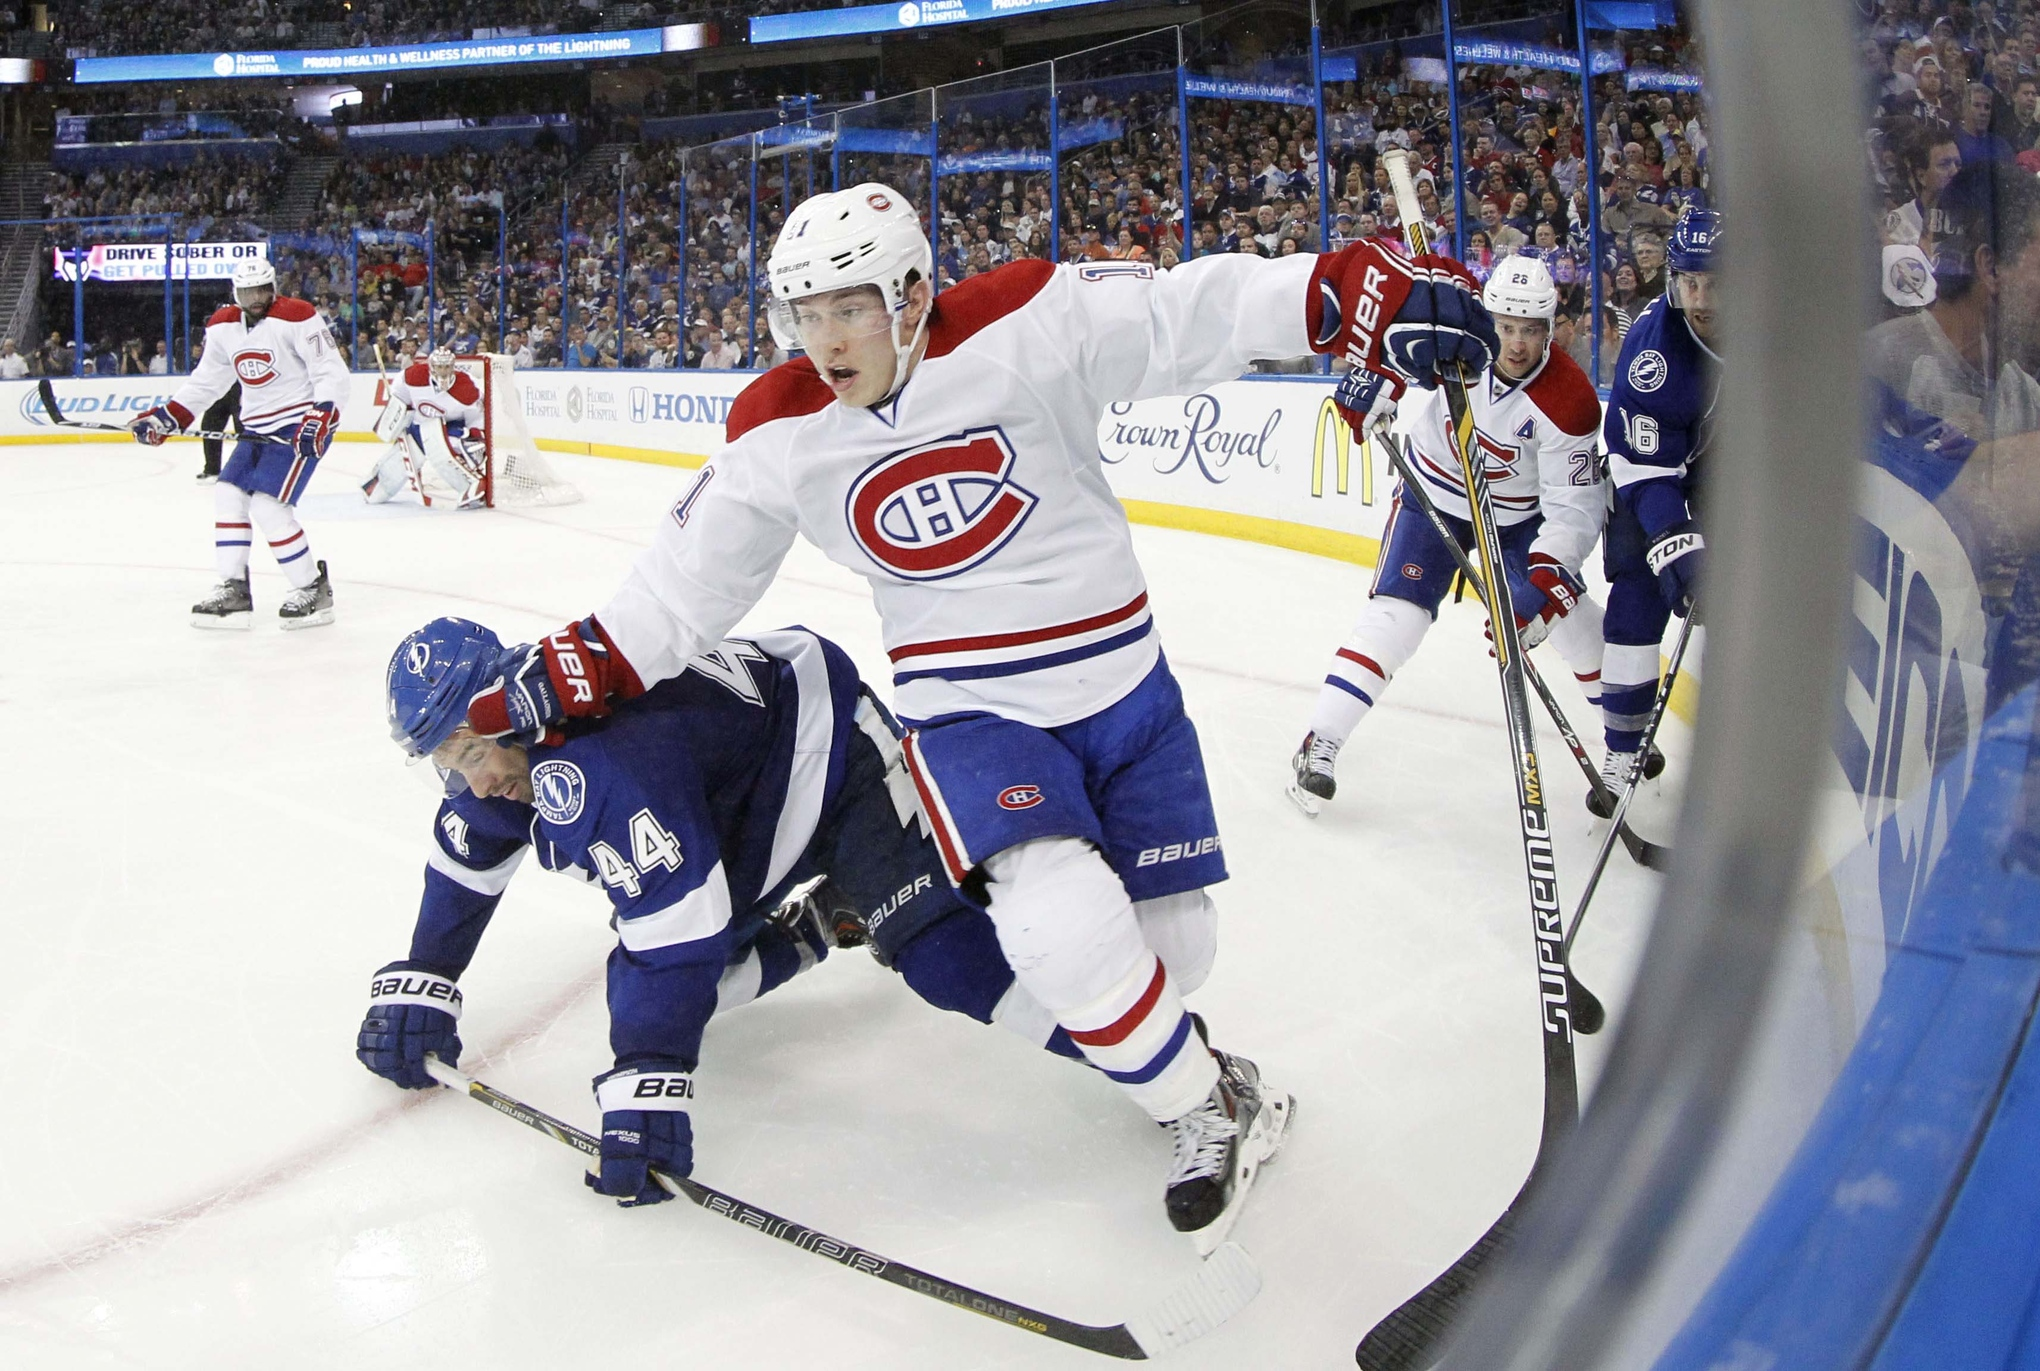 The Lightning's Nate Thompson tries to impede Montreal's Brendan Gallagher during the second period of Wednesday's playoff action at the Tampa Bay Times Forum